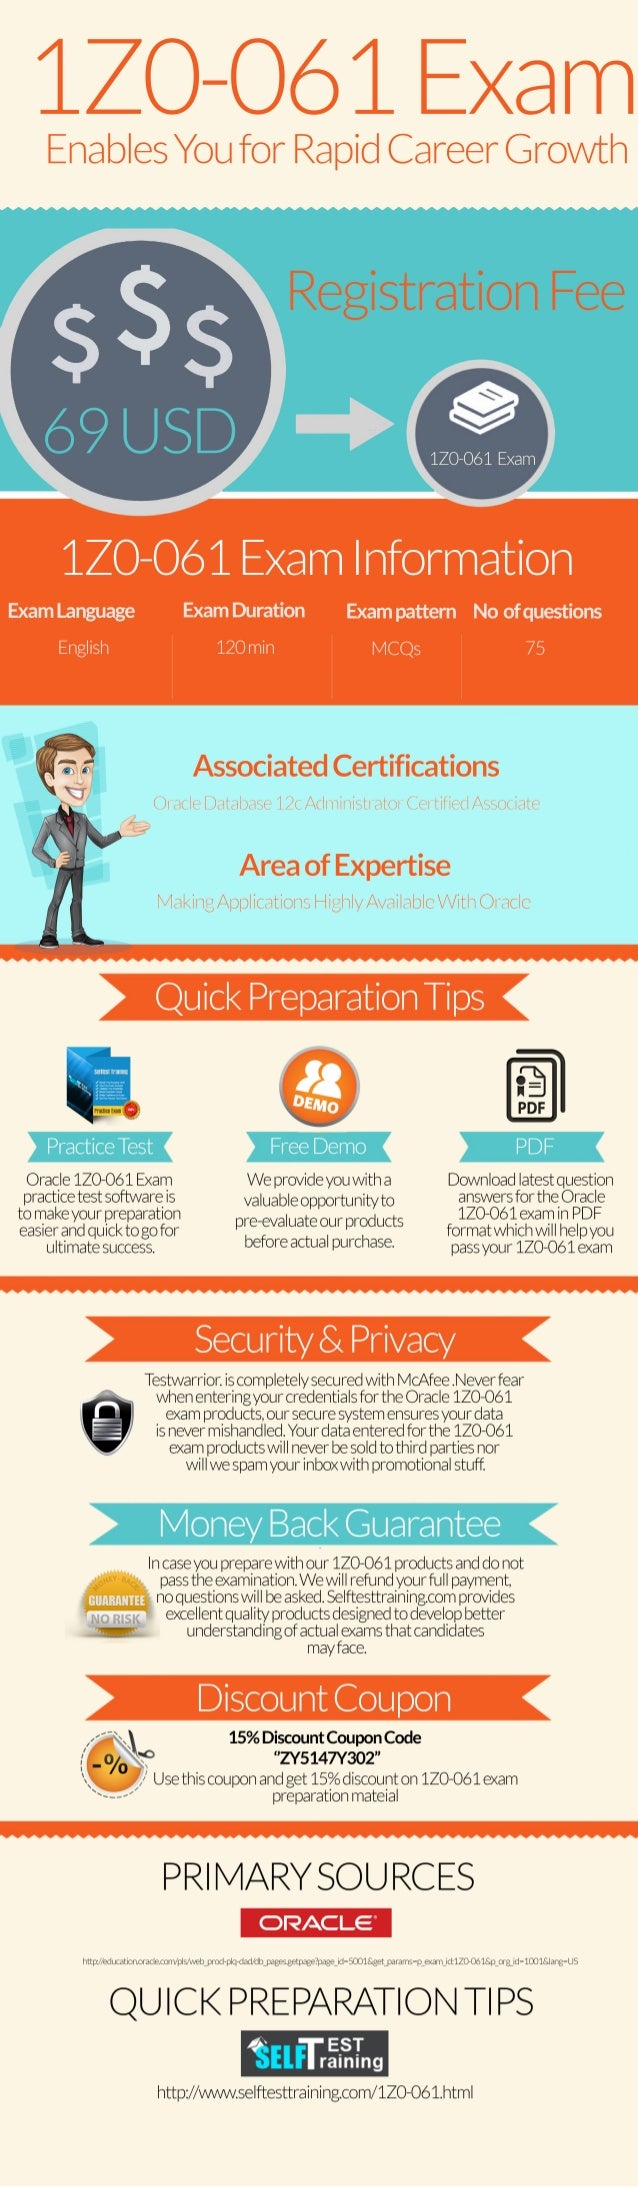 Buy oracle 1z0-061 practice questions [infographic]